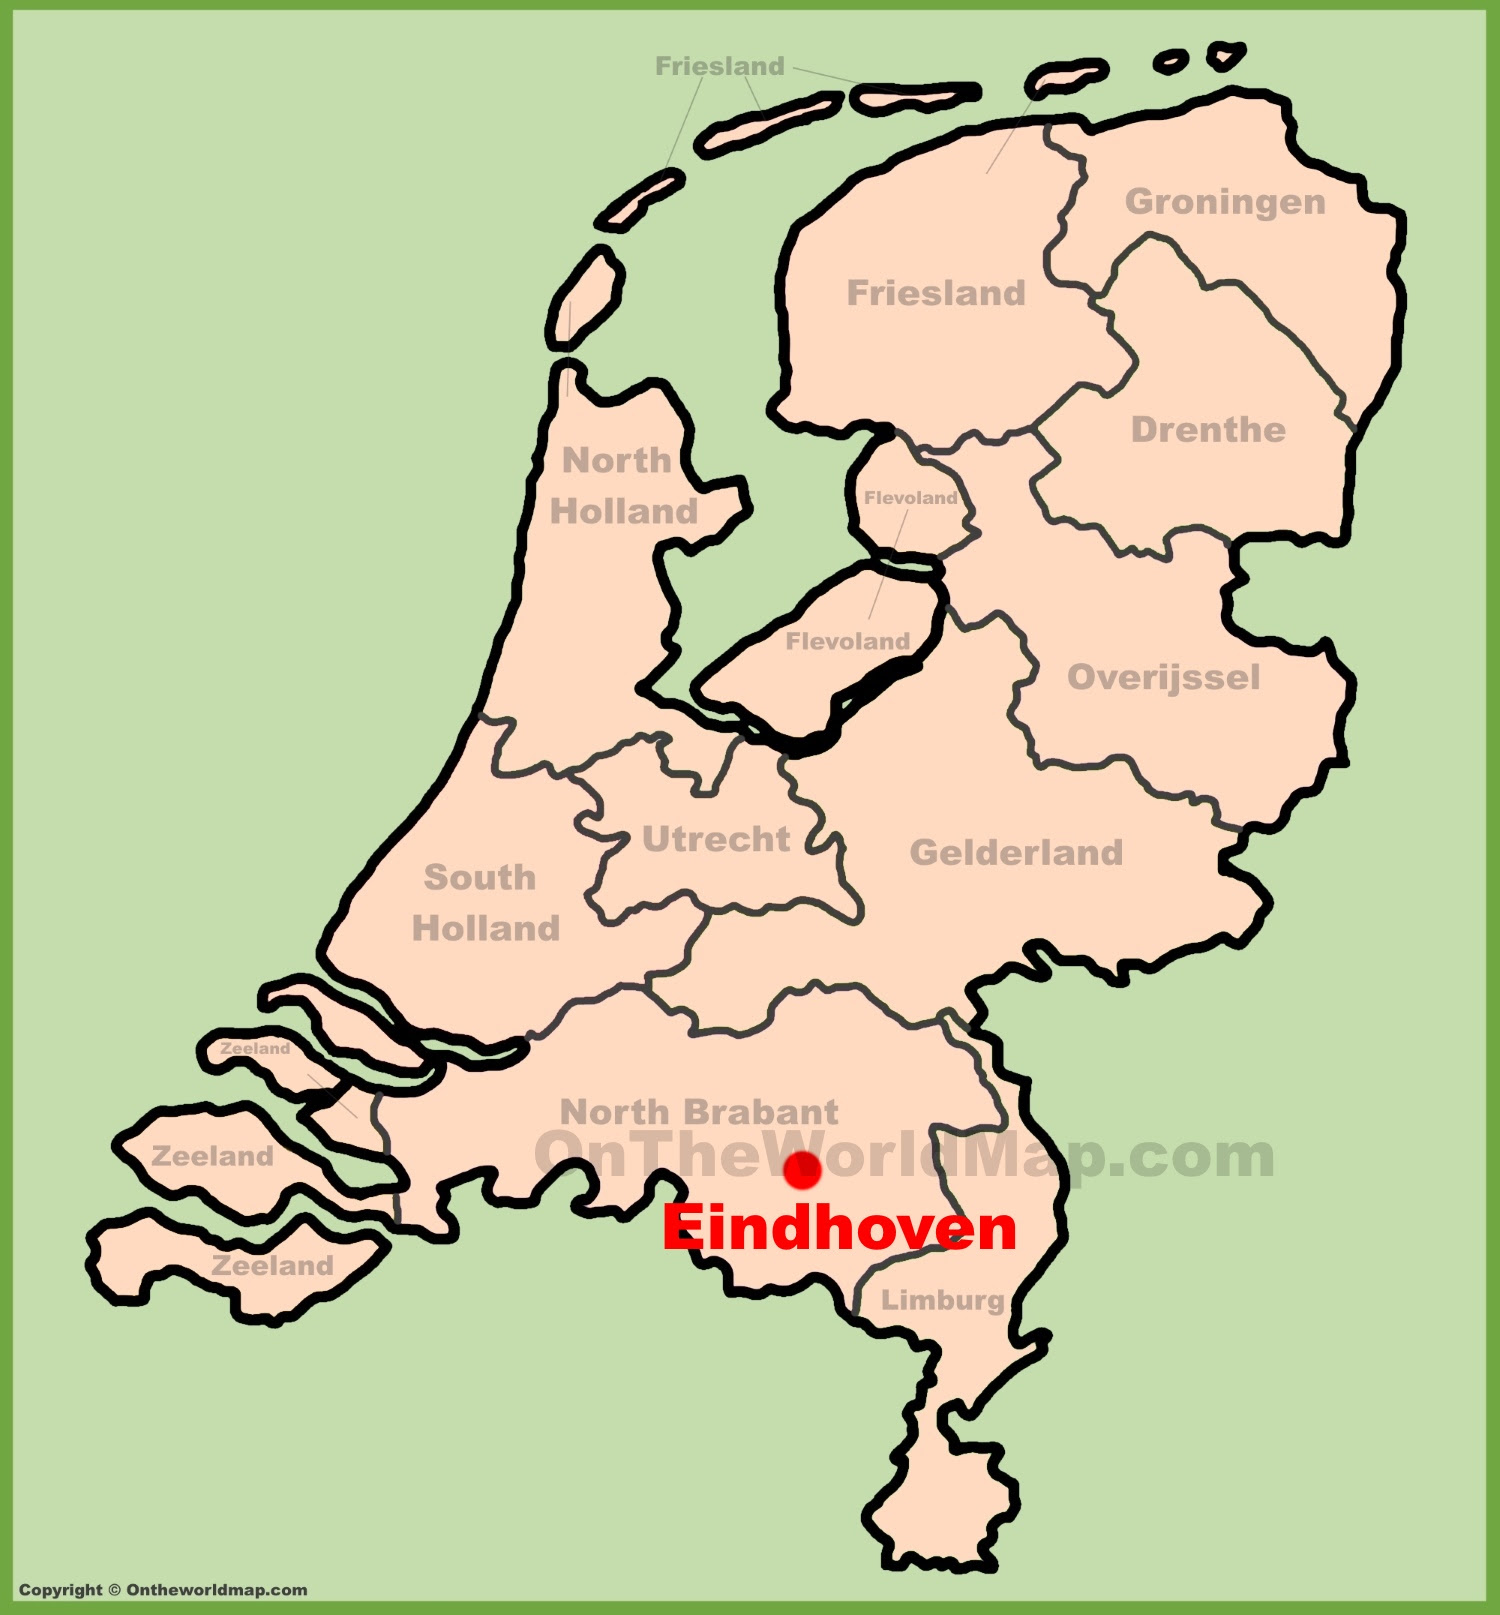 eindhoven location on the netherlands map